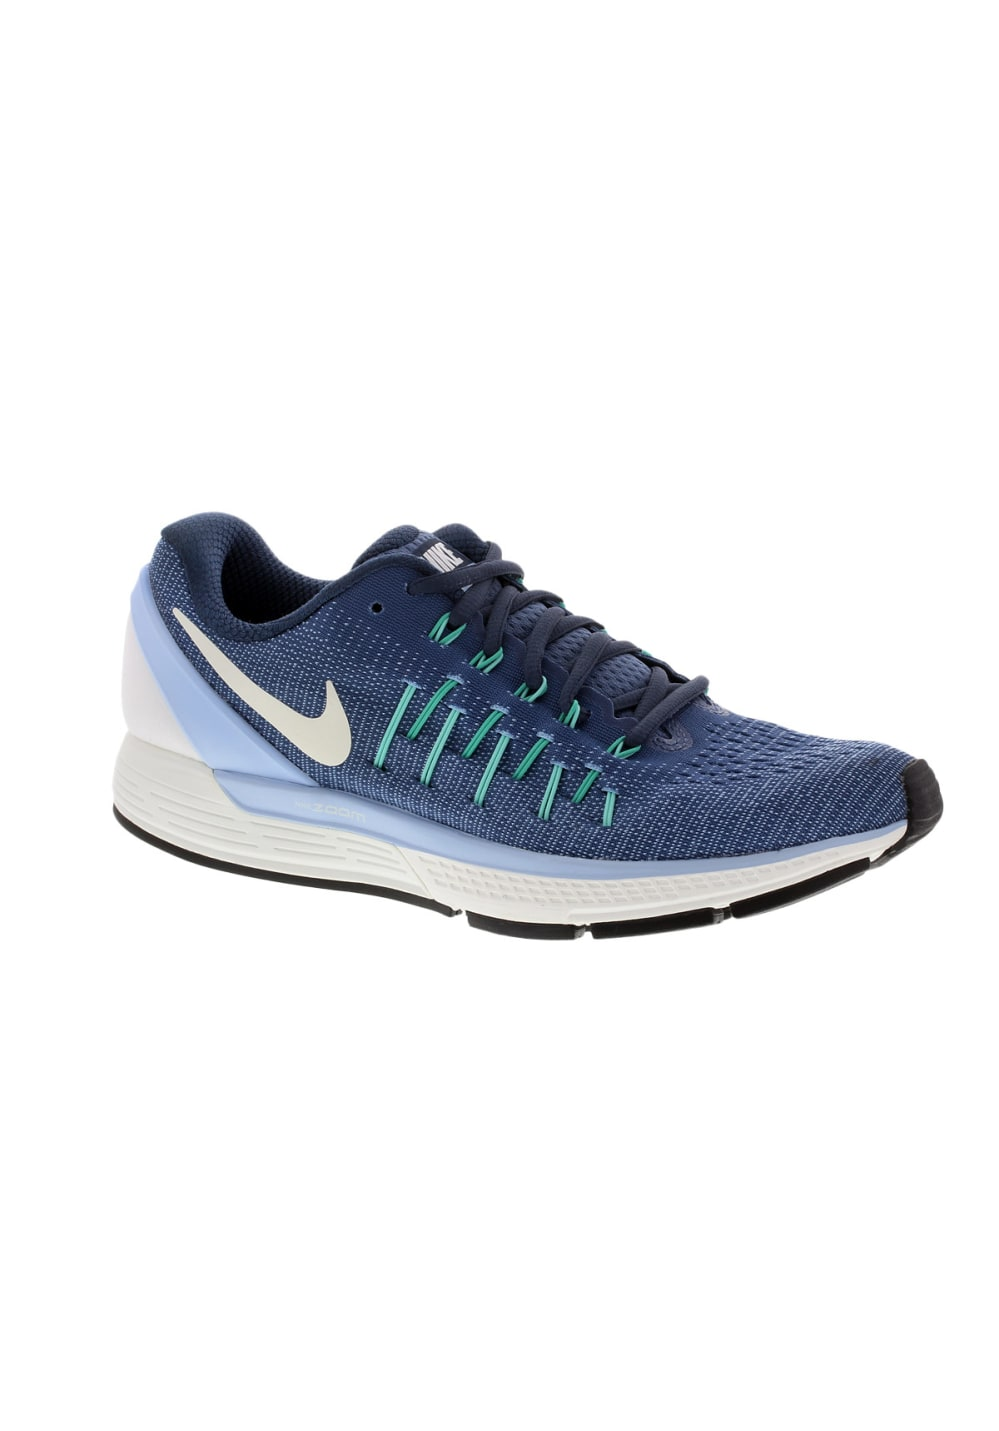 e0c734b6261b0 Nike Air Zoom Odyssey 2 - Running shoes for Women - Blue